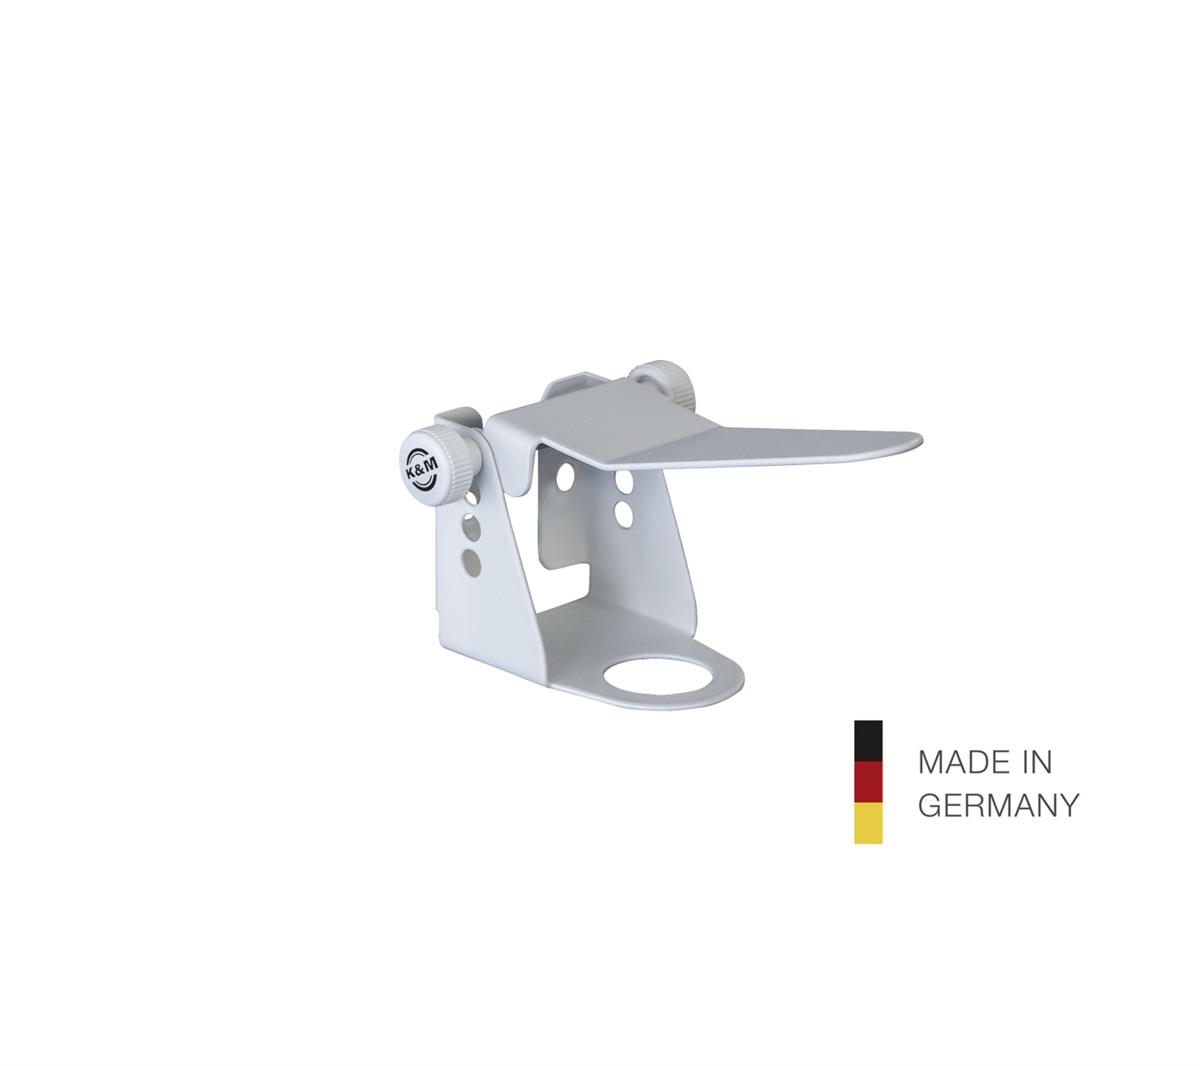 K&M 80398 Holder with lever for Disinfectan,25mm, white